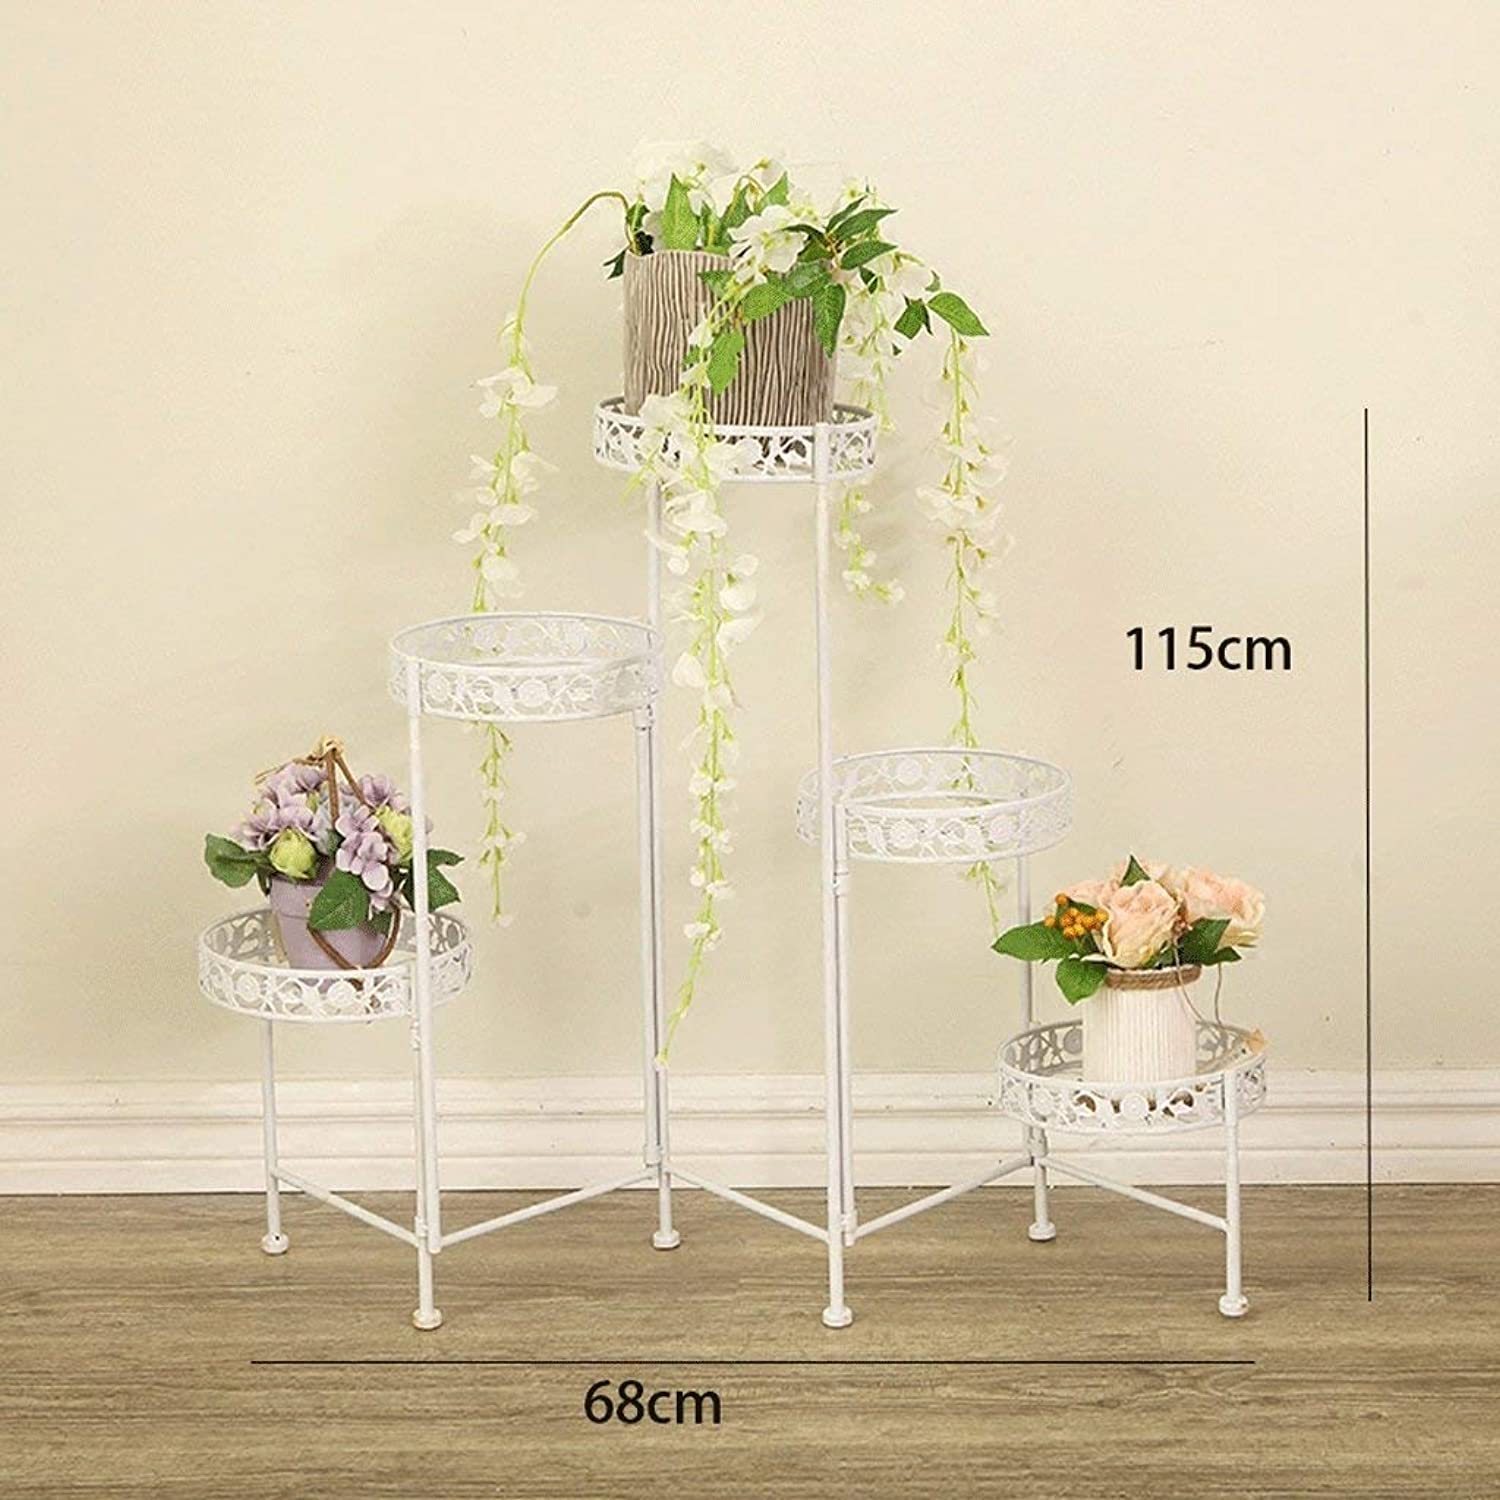 WHKFD Fashion Interior Fashion Multi-Storey Floor Stand, Multi-Functional Shelf